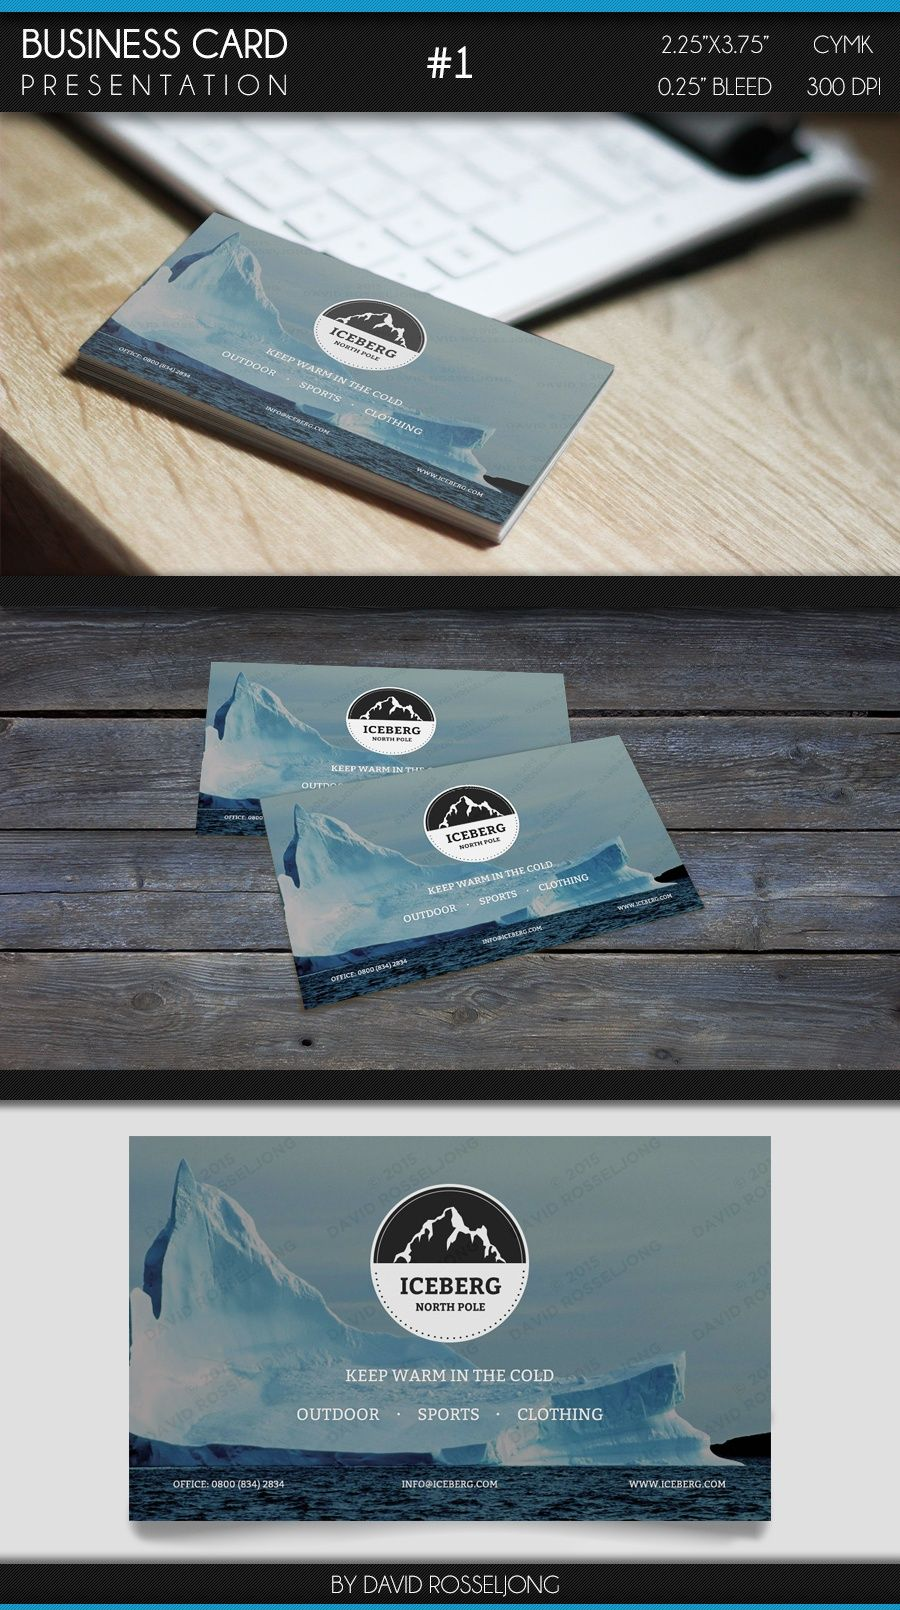 Business Card - Modern, Clean and Elegant #1